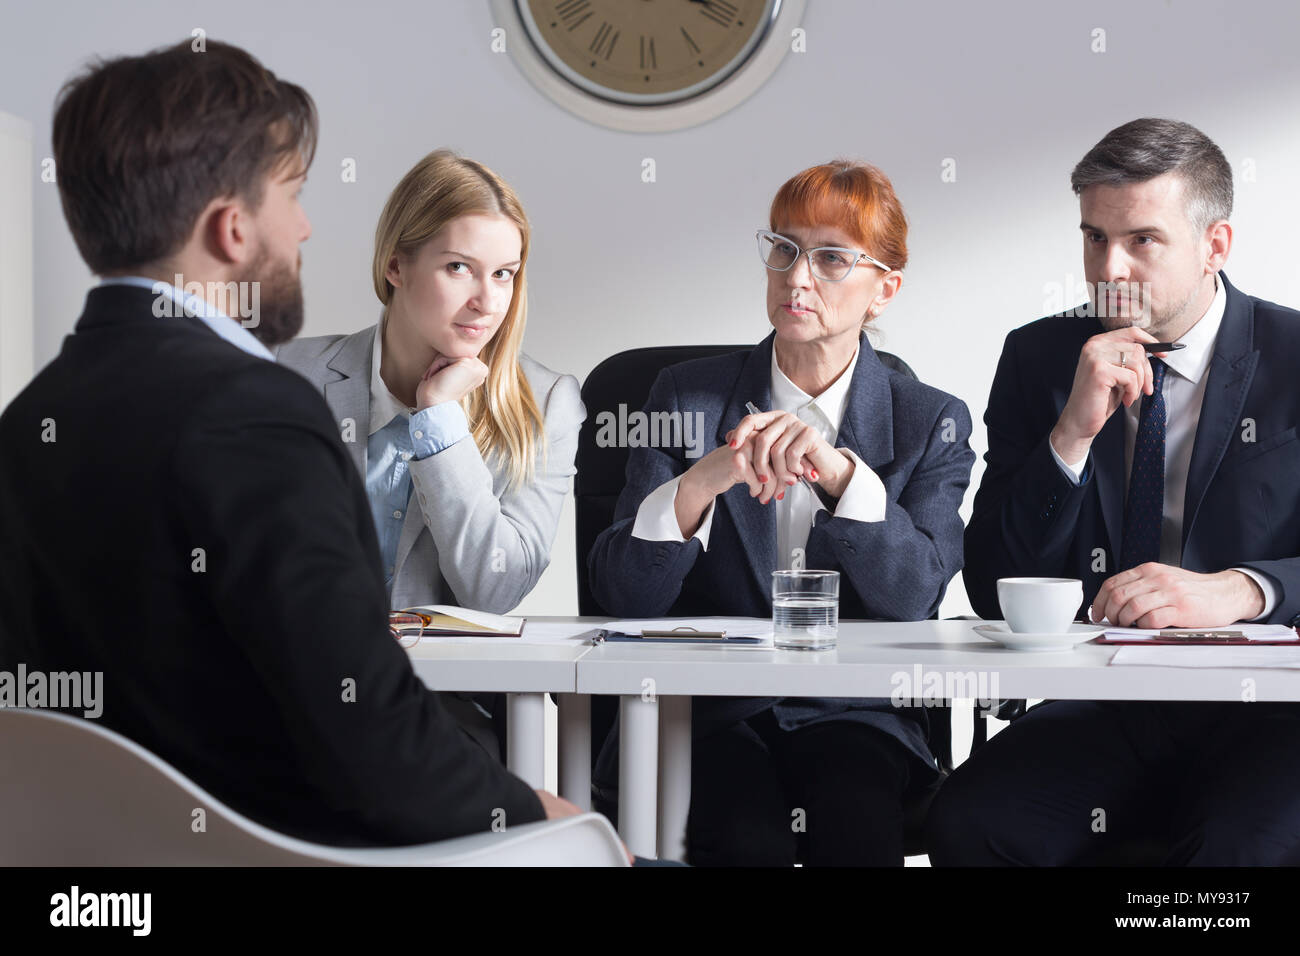 Man back view during job interview and three businesspeople sitting beside table - Stock Image